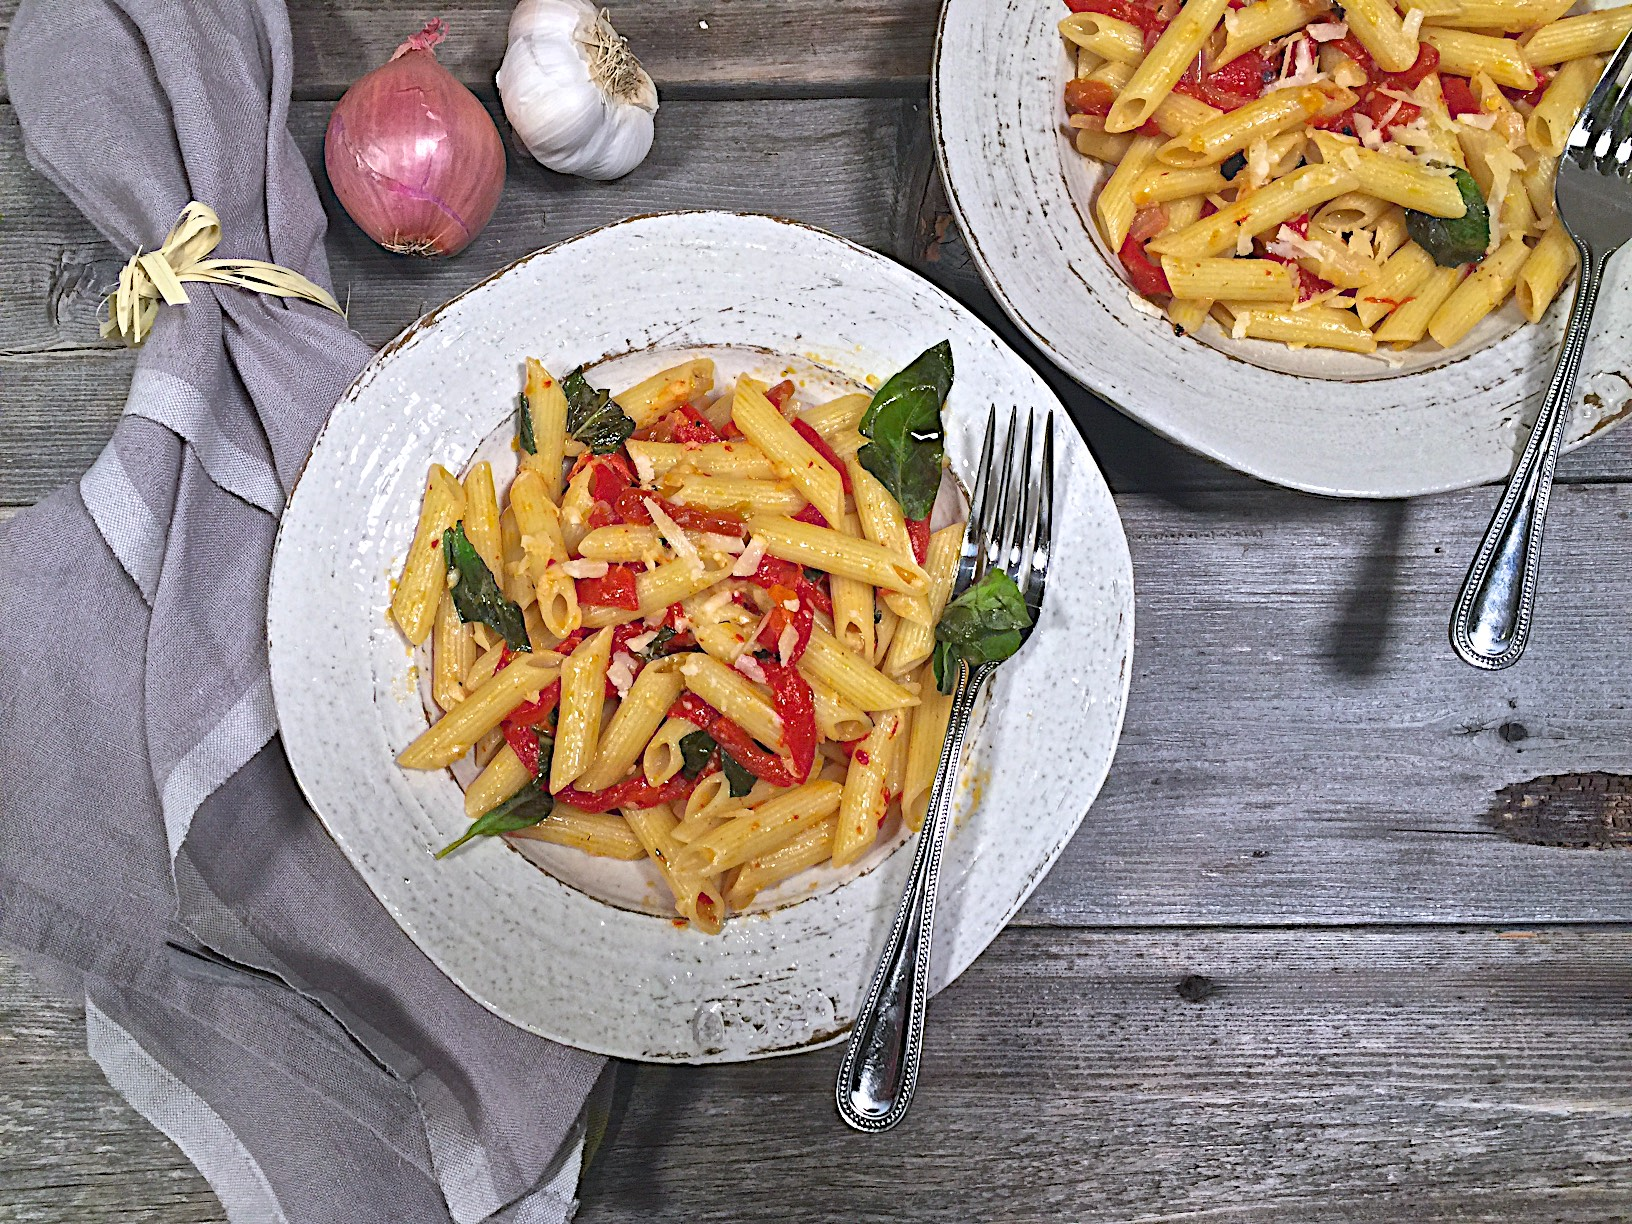 Pasta with roasted red pepper